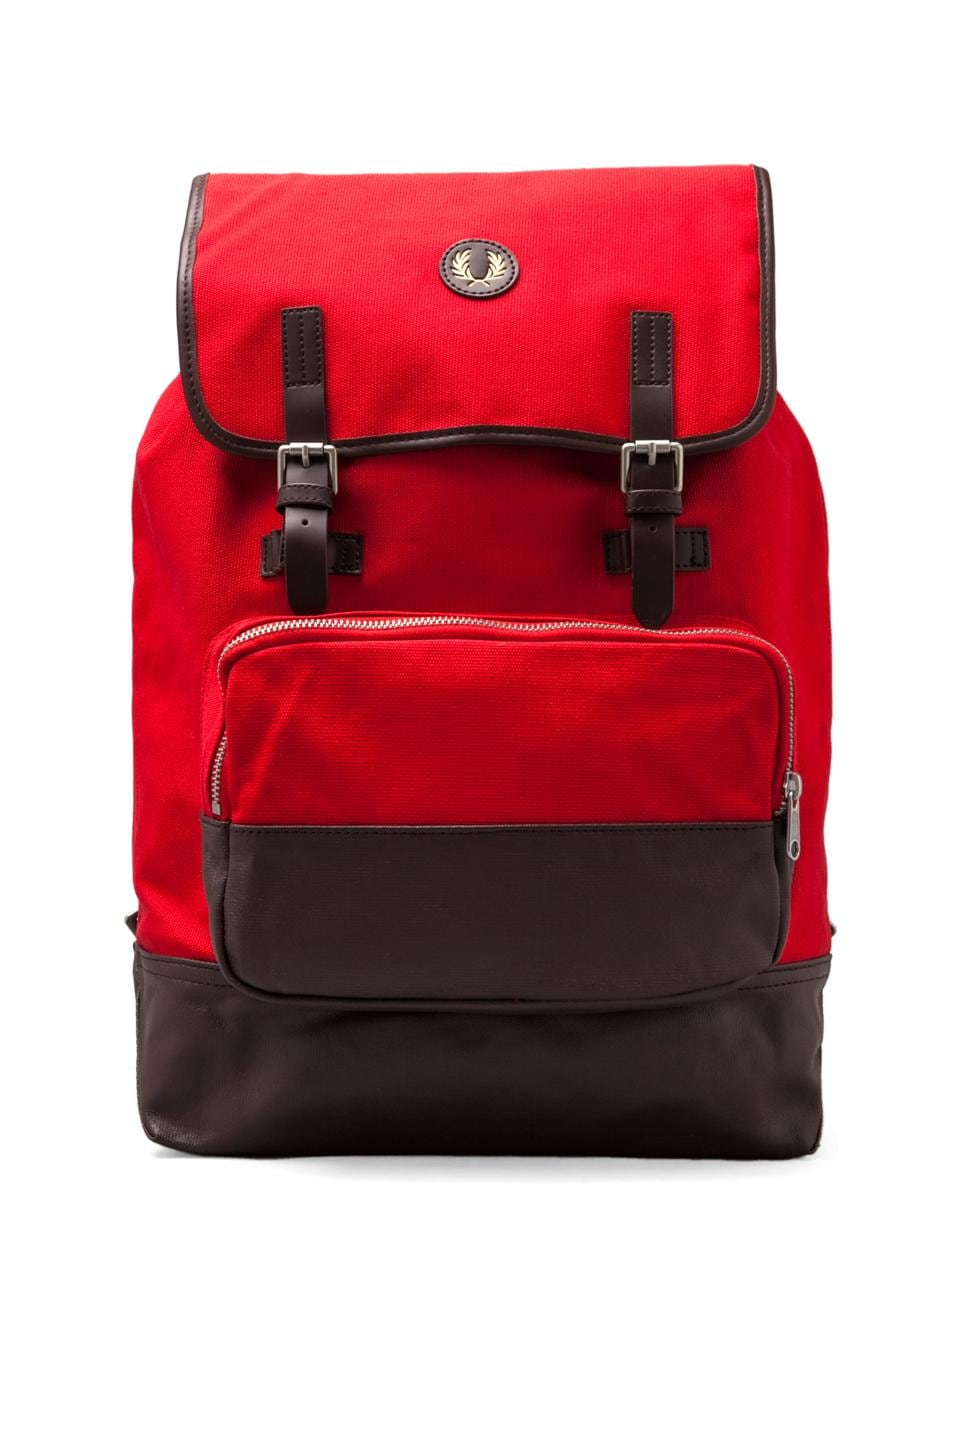 Fred Perry Cotton Rucksack in Red/ Chocolate